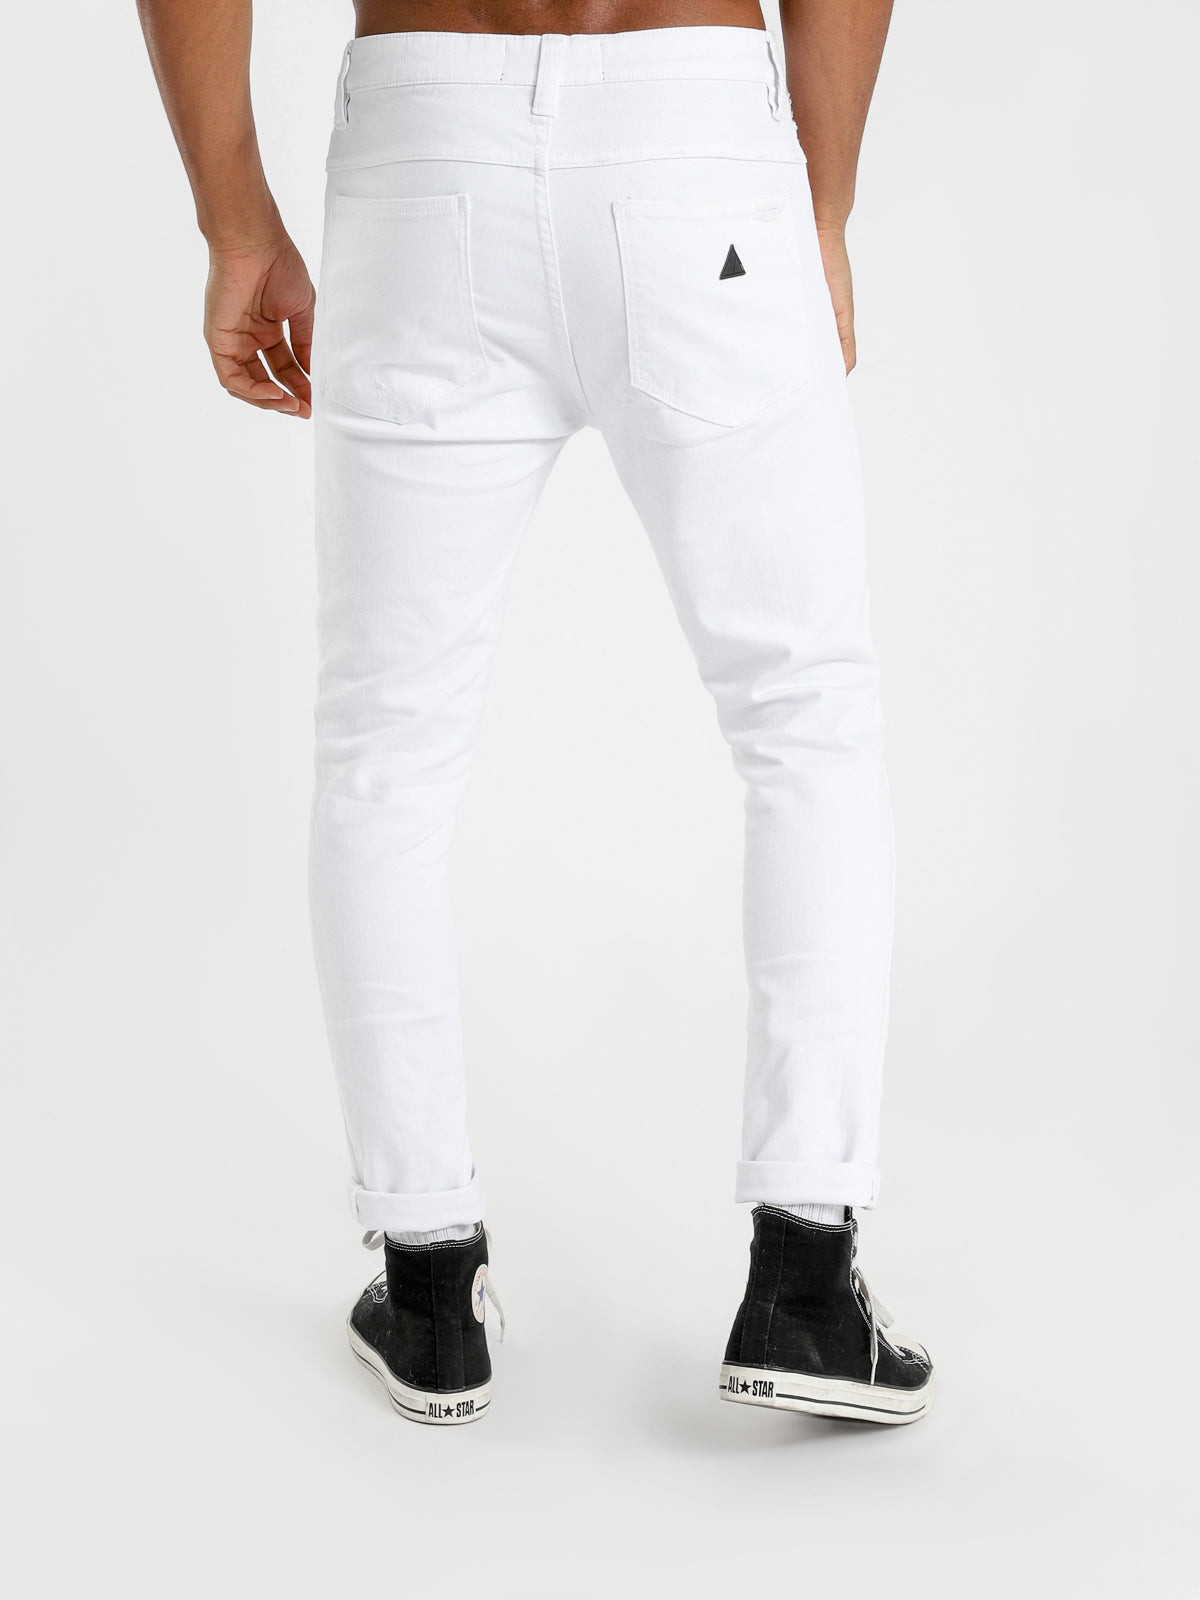 A Dropped Skinny Turn Up Jeans in White Denim